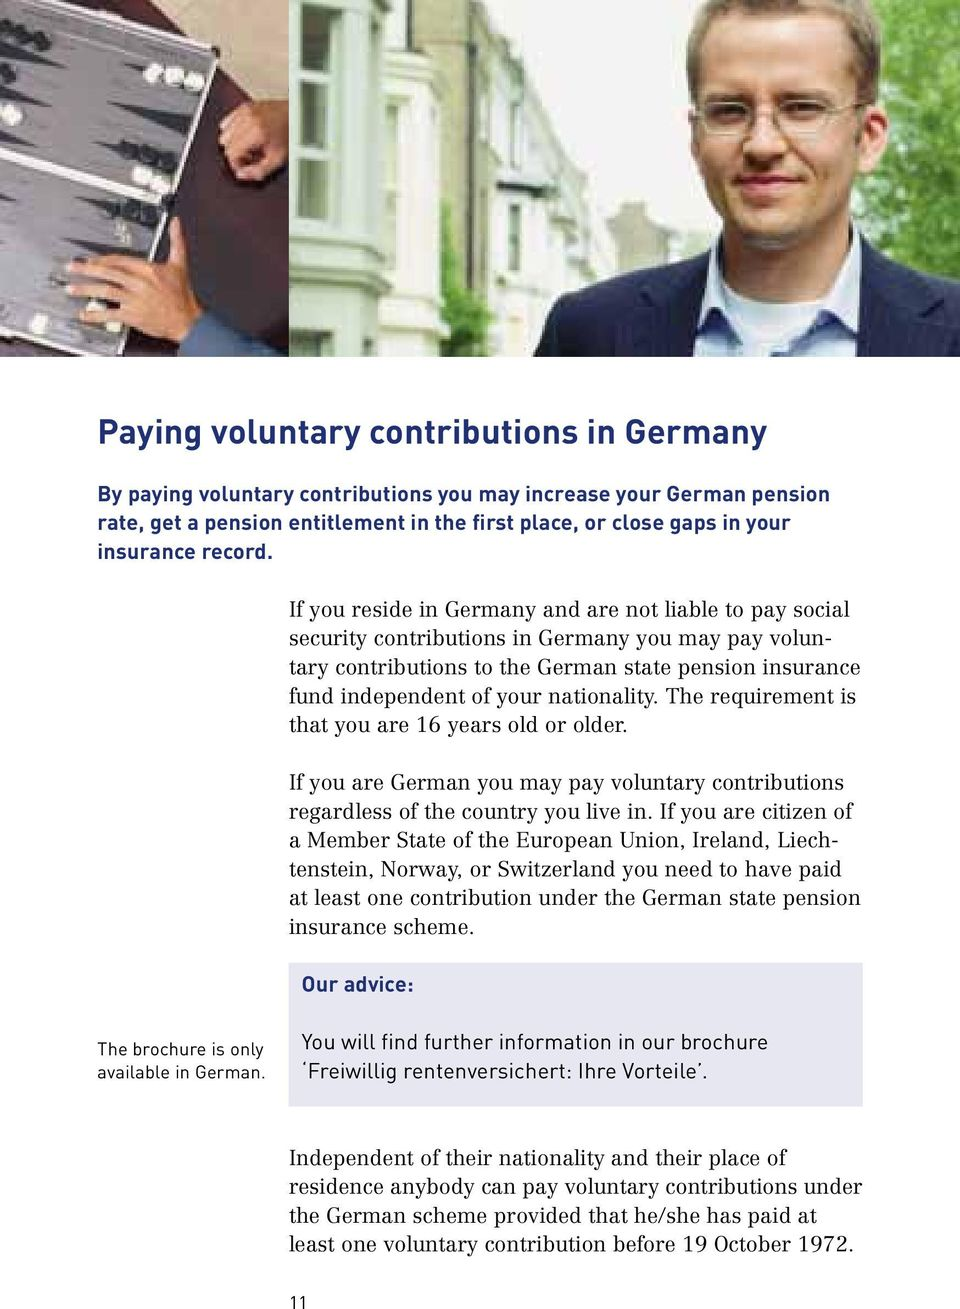 If you reside in Germany and are not liable to pay social security contributions in Germany you may pay voluntary contributions to the German state pension insurance fund independent of your